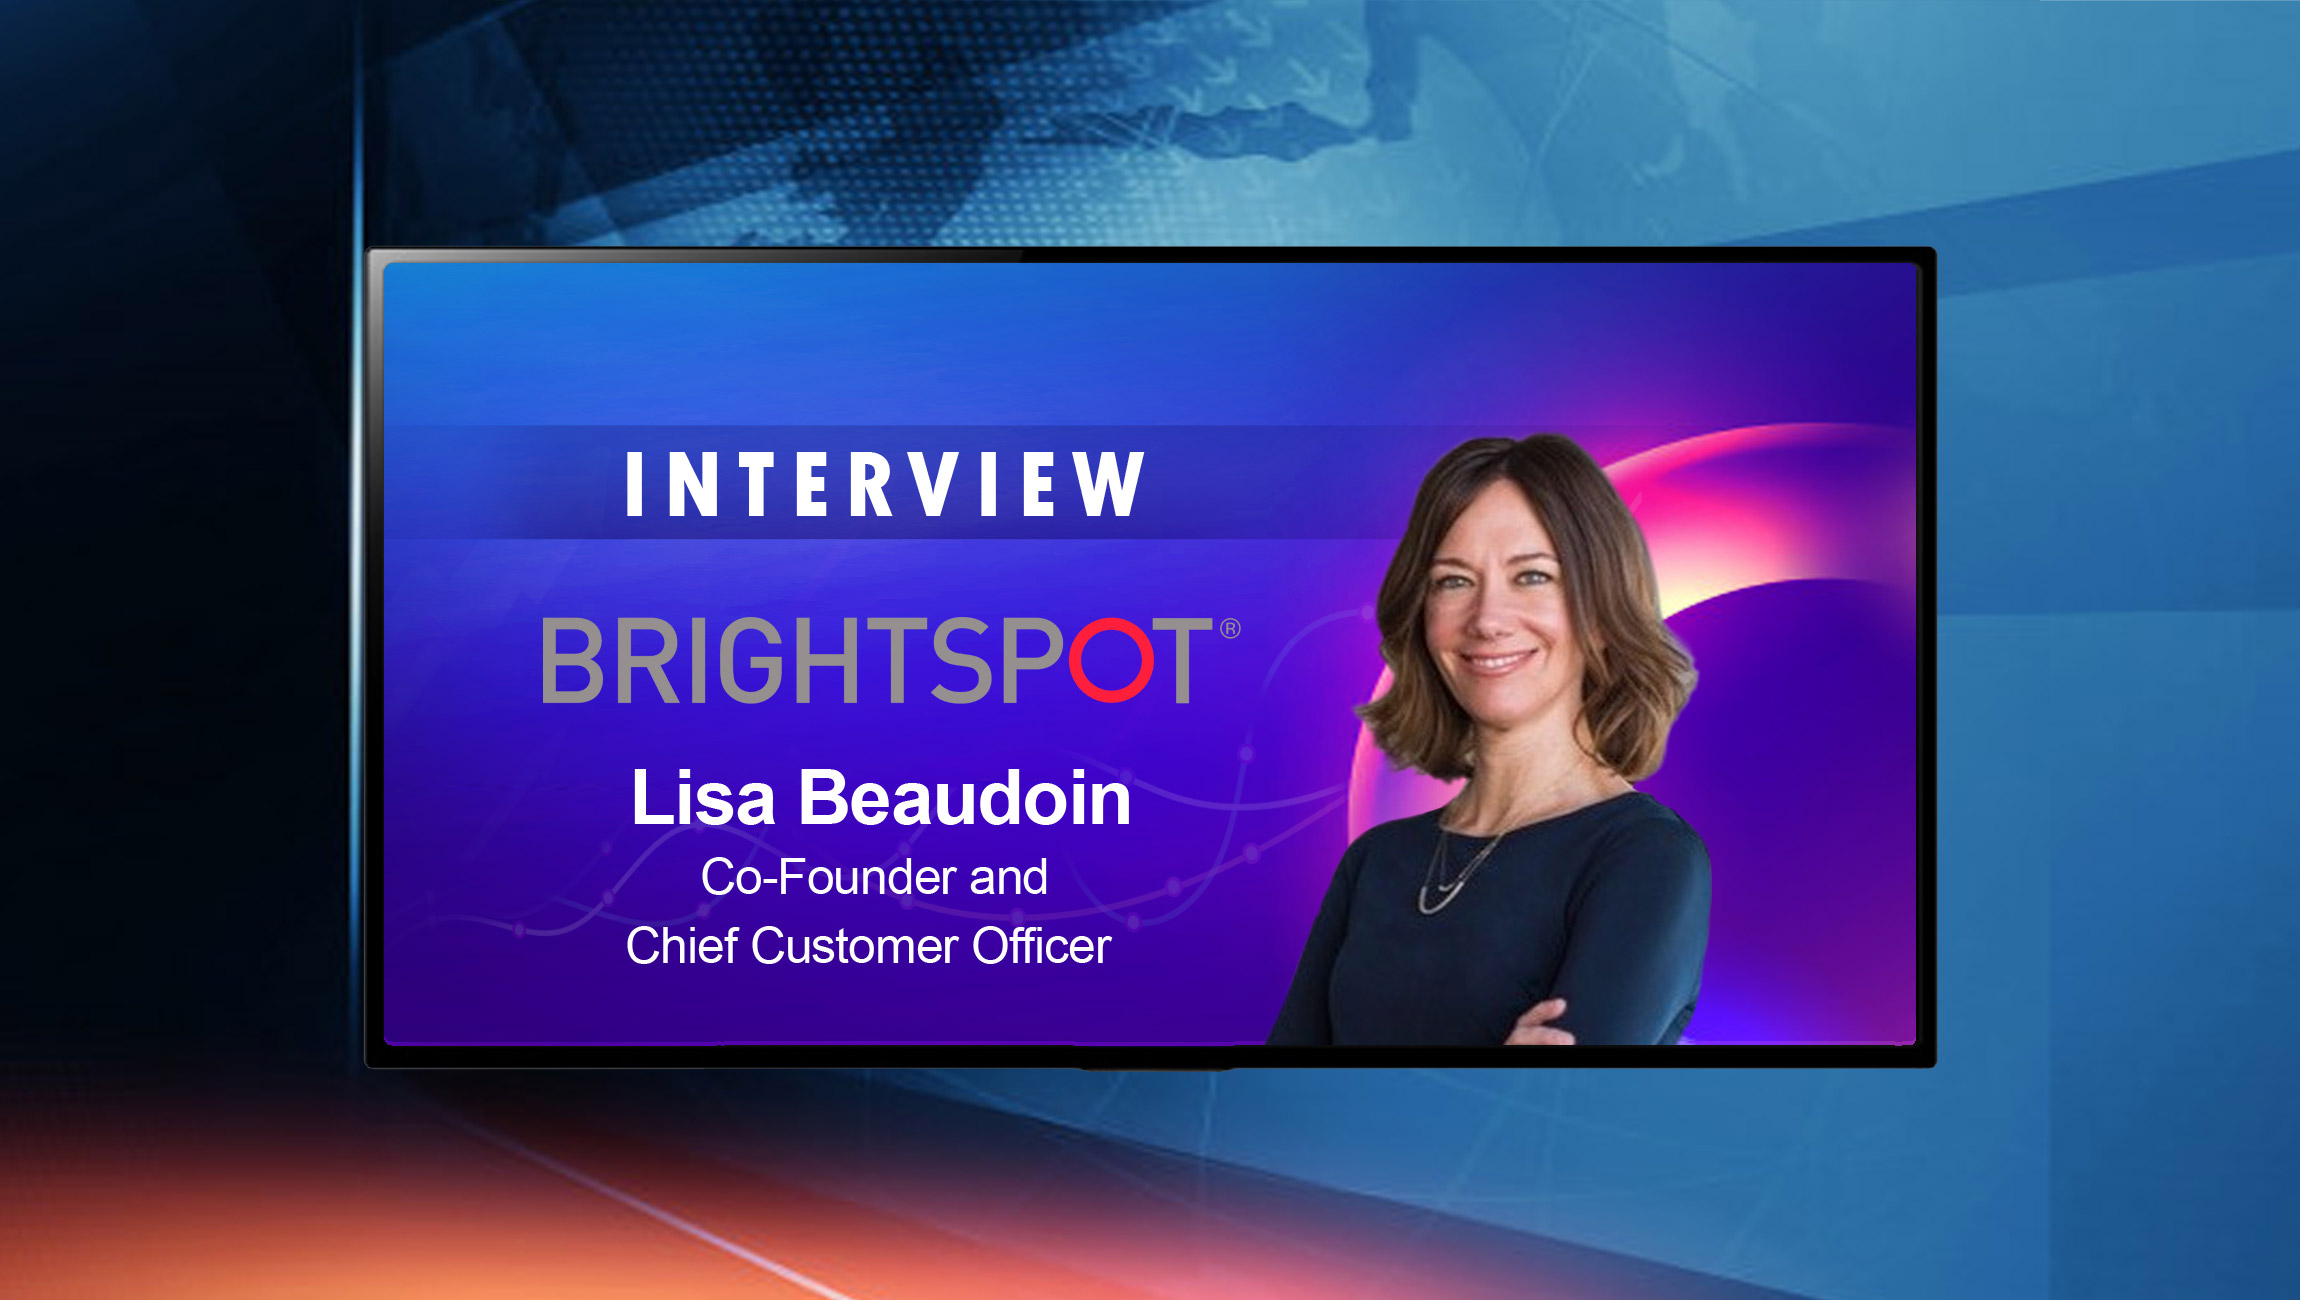 SalesTechStar Interview with Lisa Beaudoin, Co-Founder and Chief Customer Officer, Brightspot